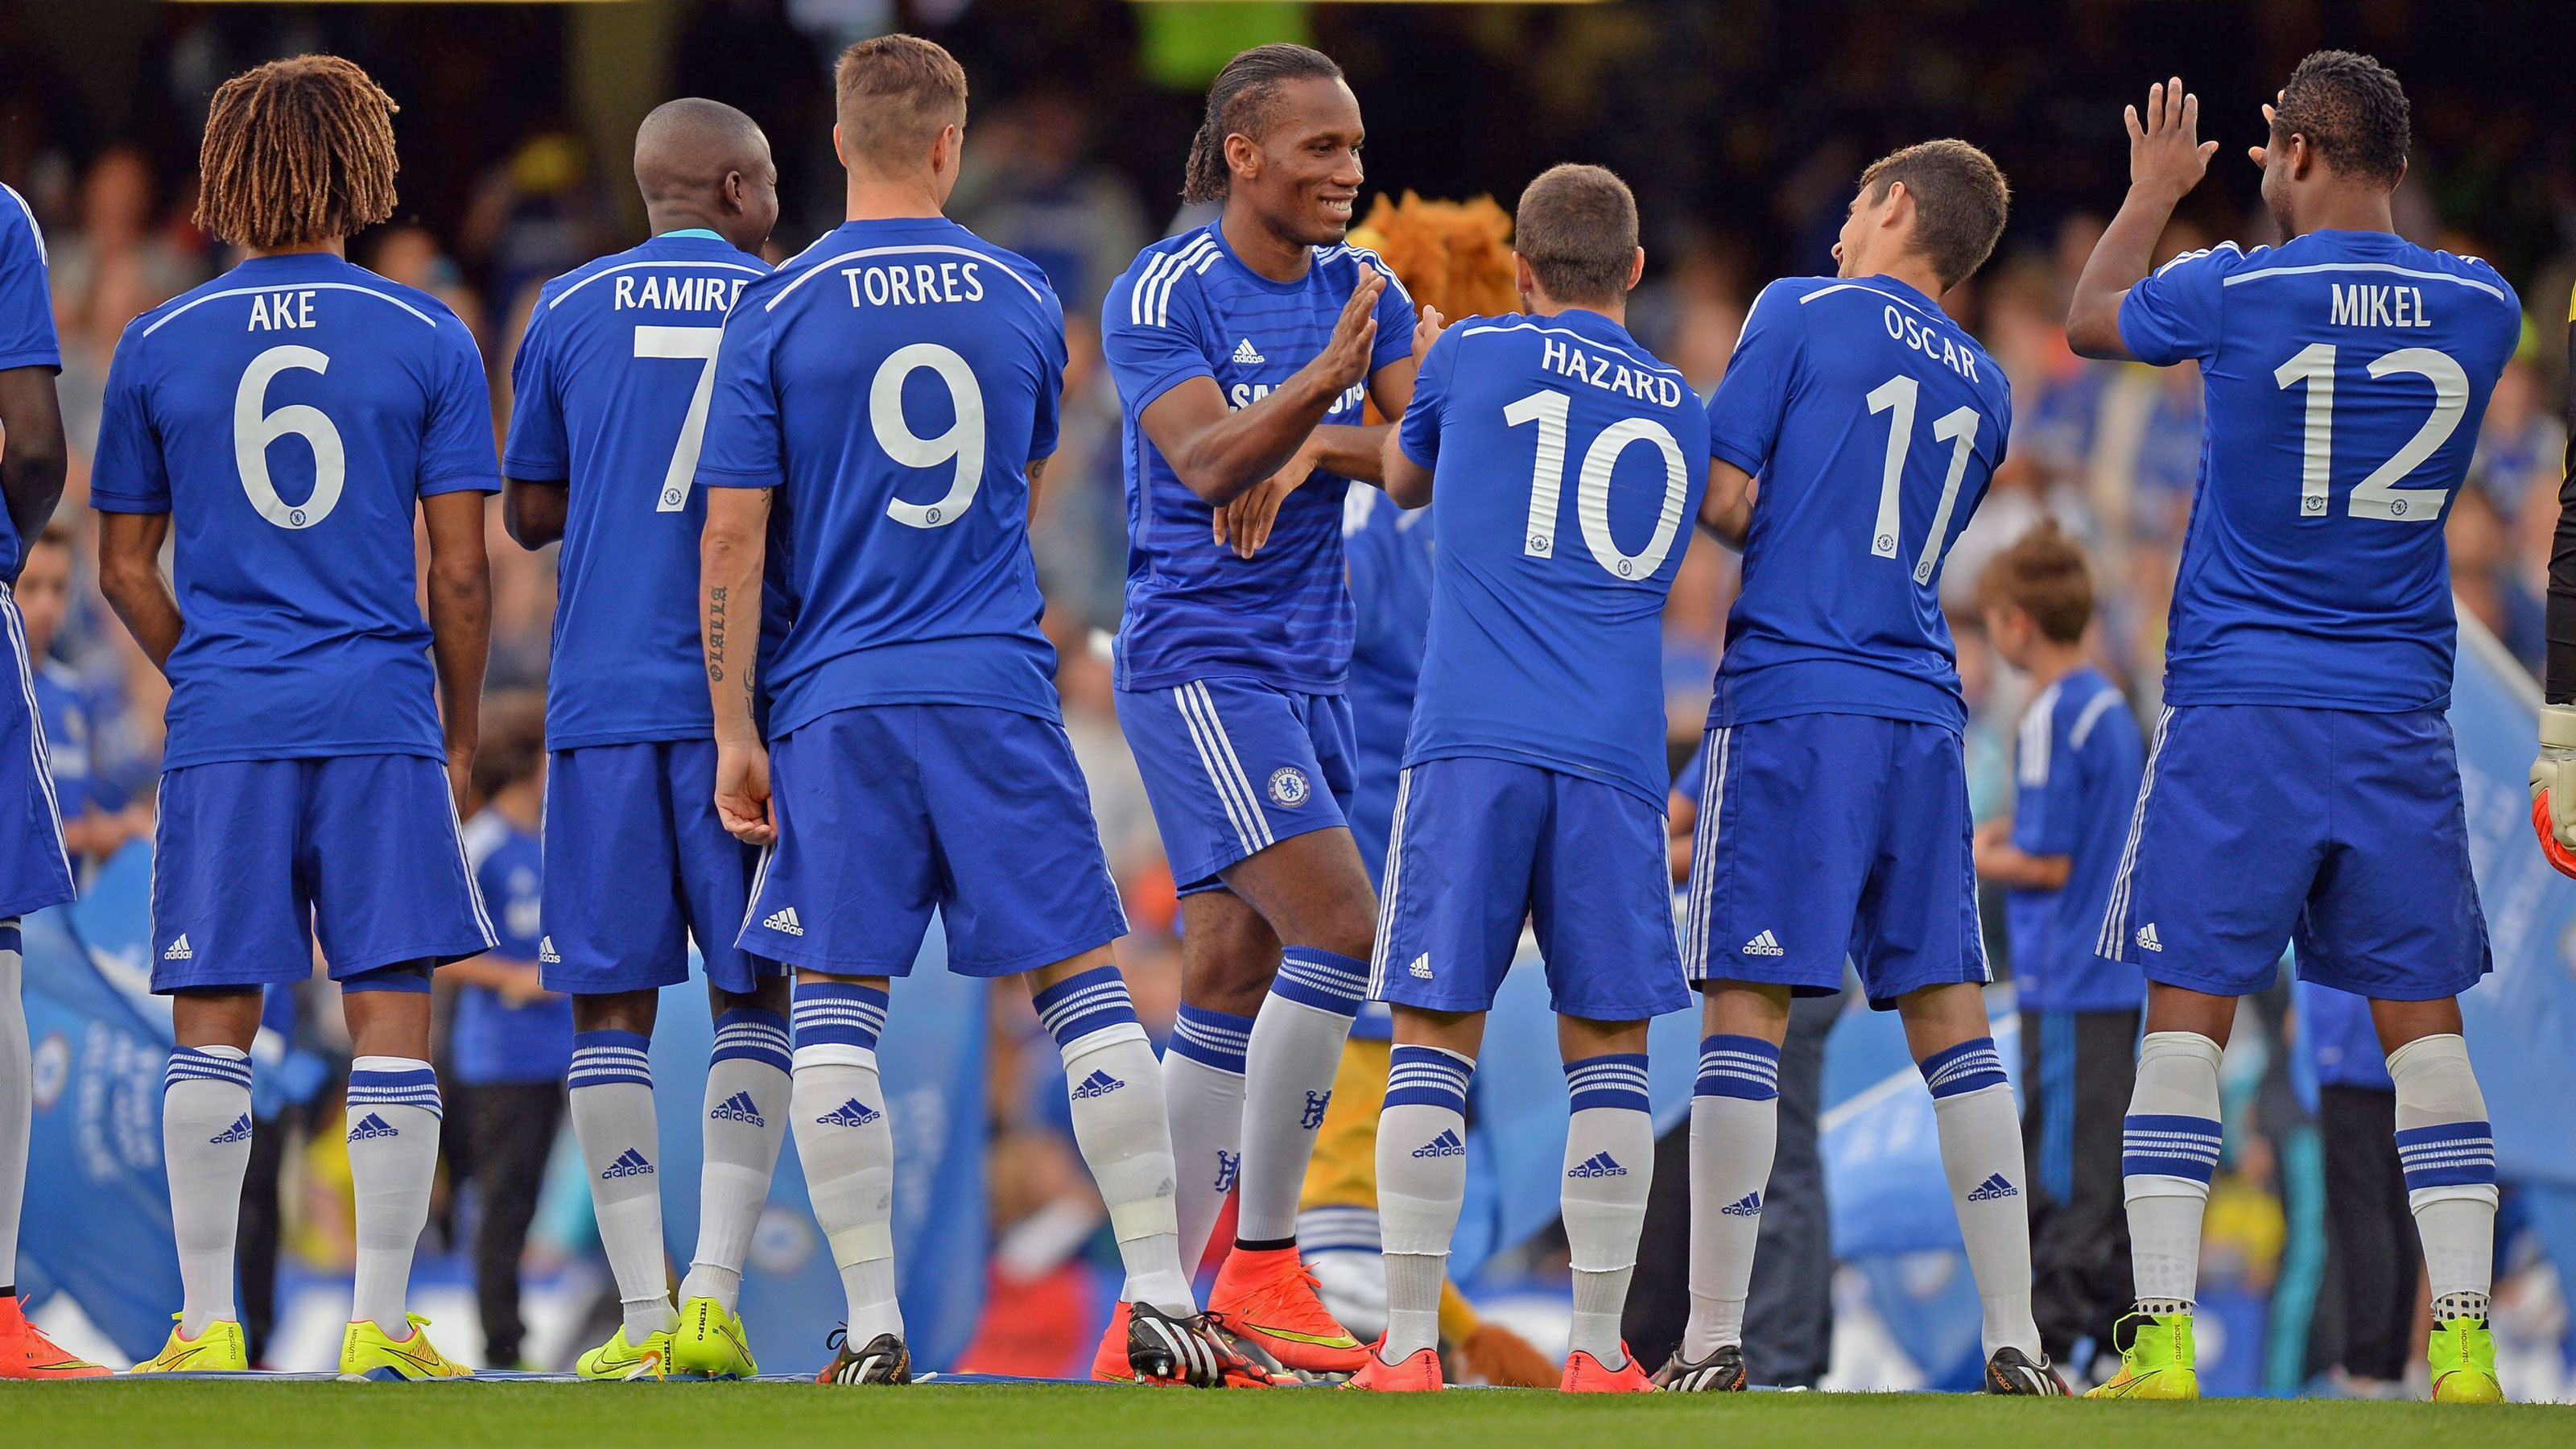 Soccer players at the Chelsea Football Match at Stamford Bridge Stadium in London